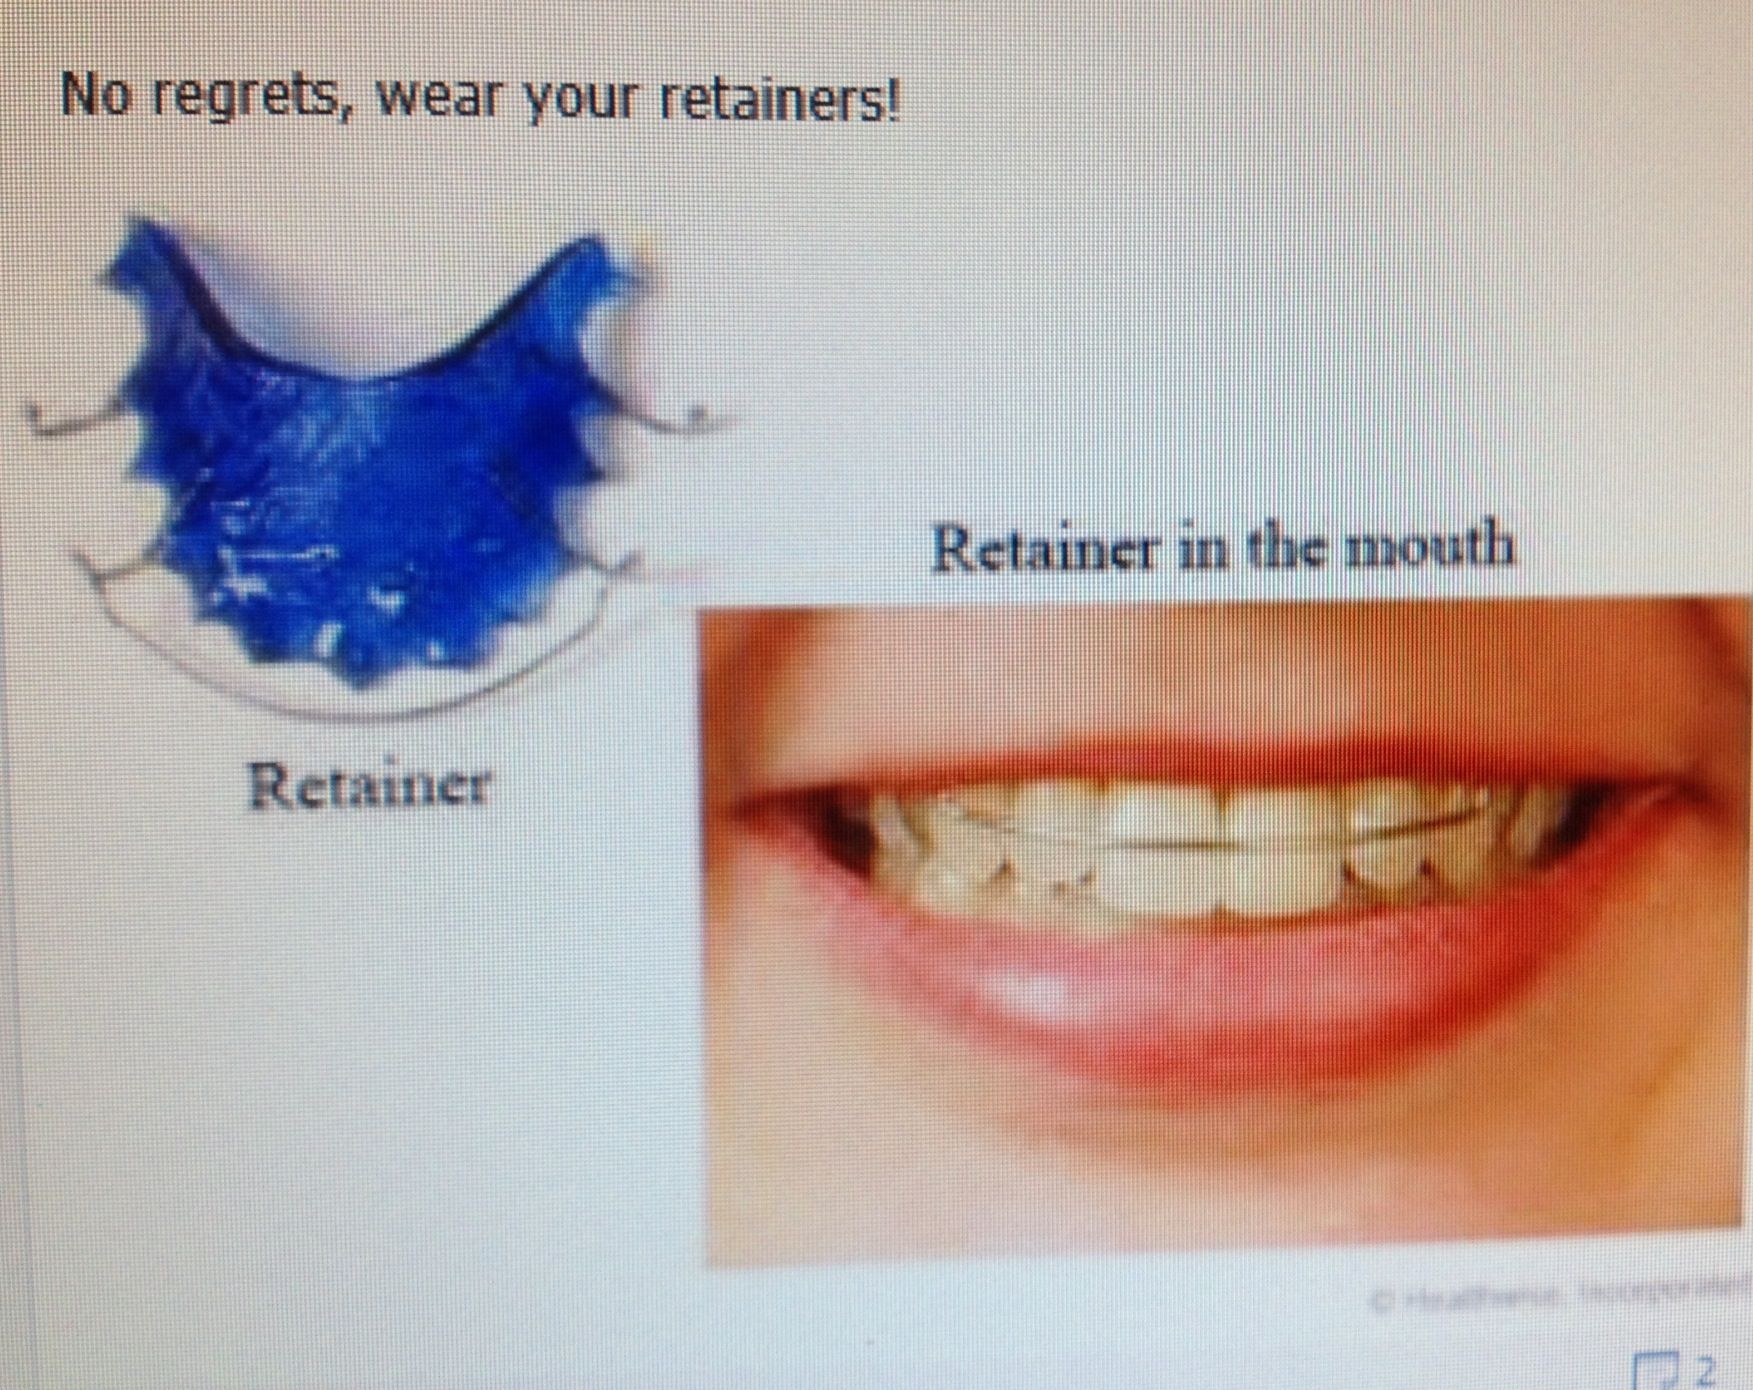 My Retainer Broke And My Teeth Have Moved - Update Today